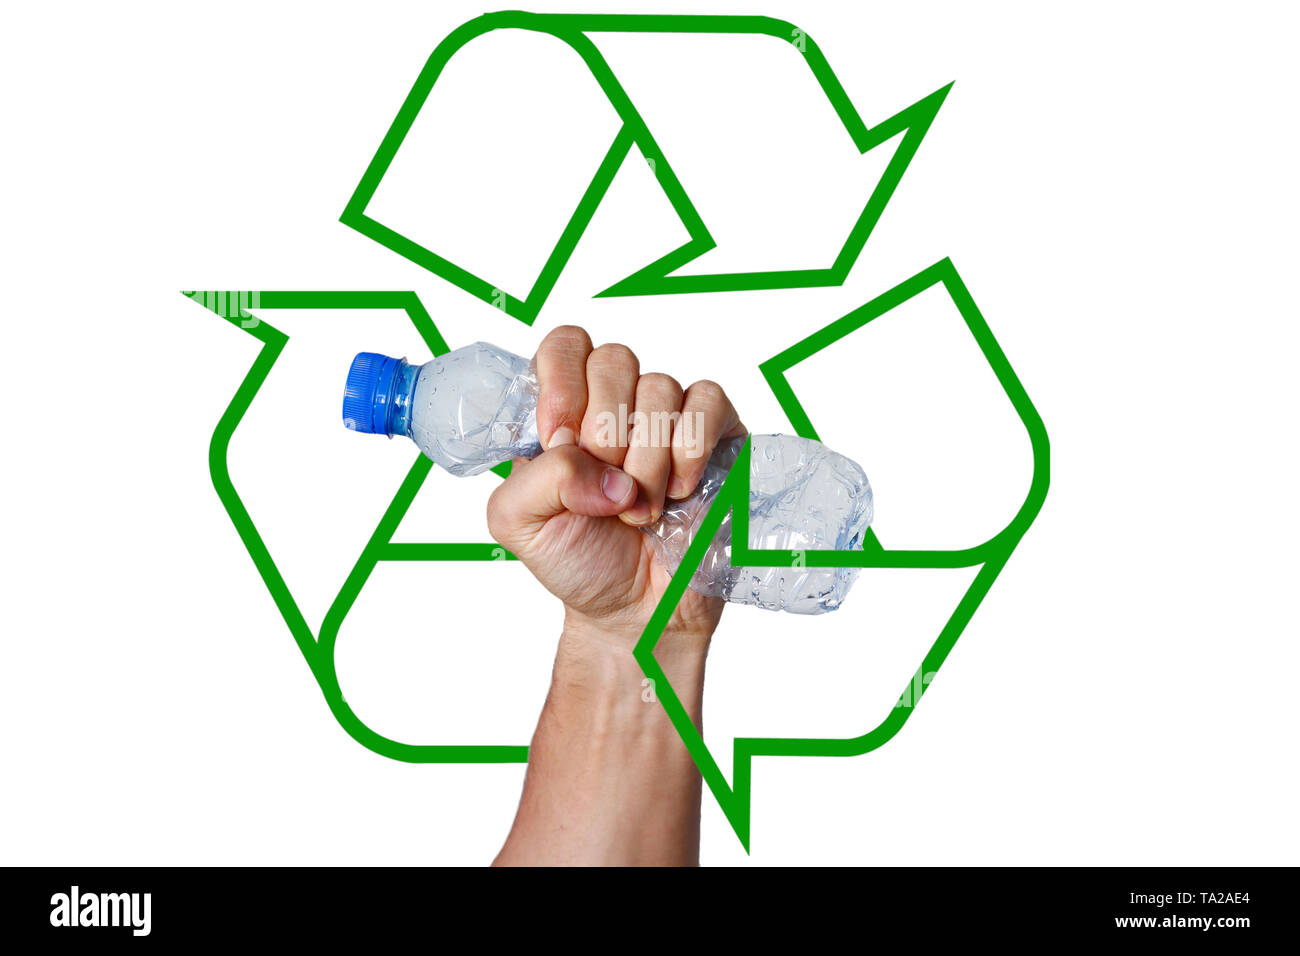 Hand squeezing Plastic Bottle representing movement against pollution and for recycling. Recycling logo in the background. - Stock Image